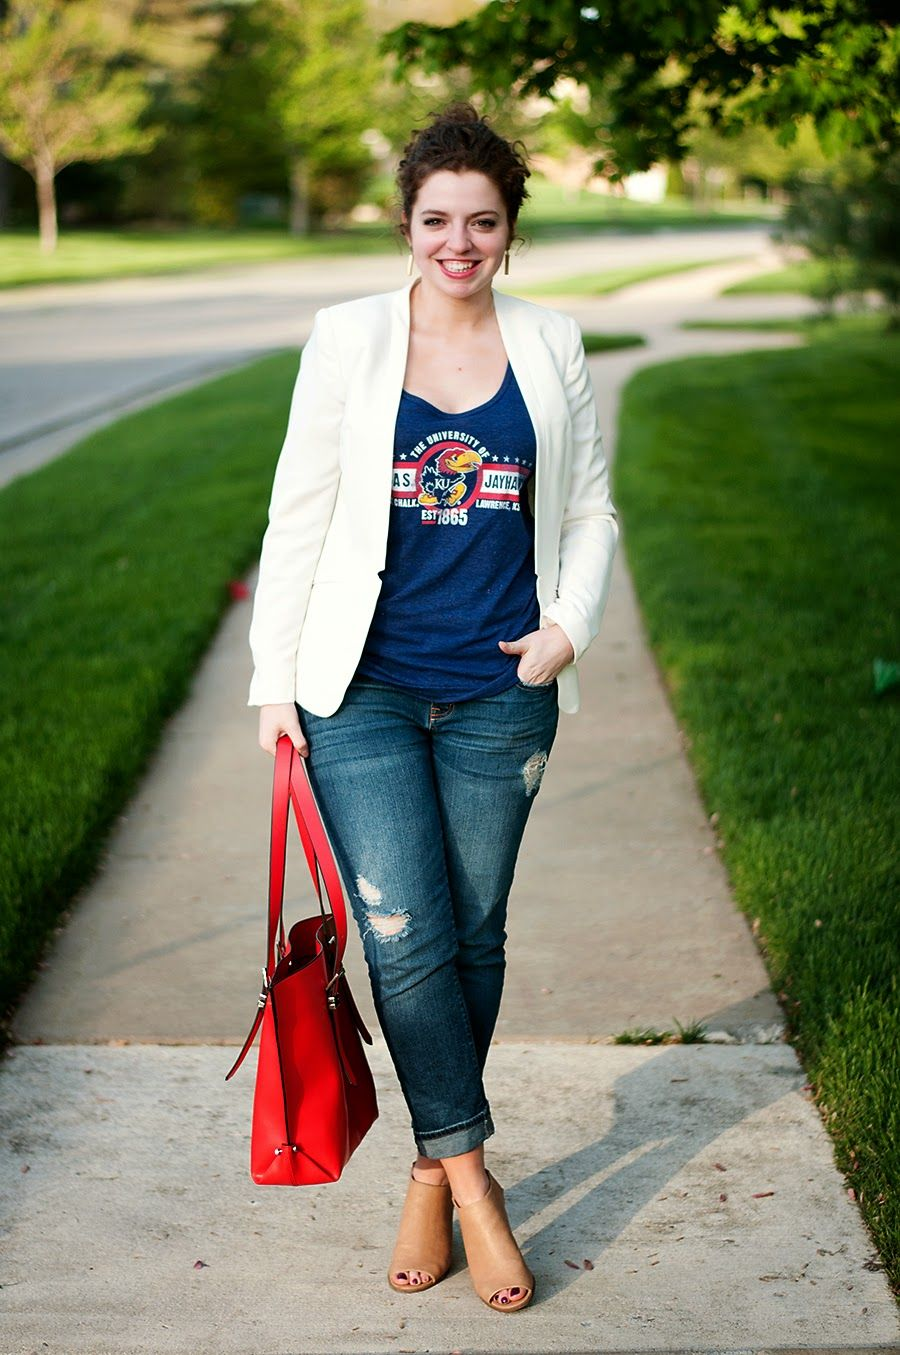 Dress up your boyfriend - How To Dress Up Your Favorite College Shirt Http Www